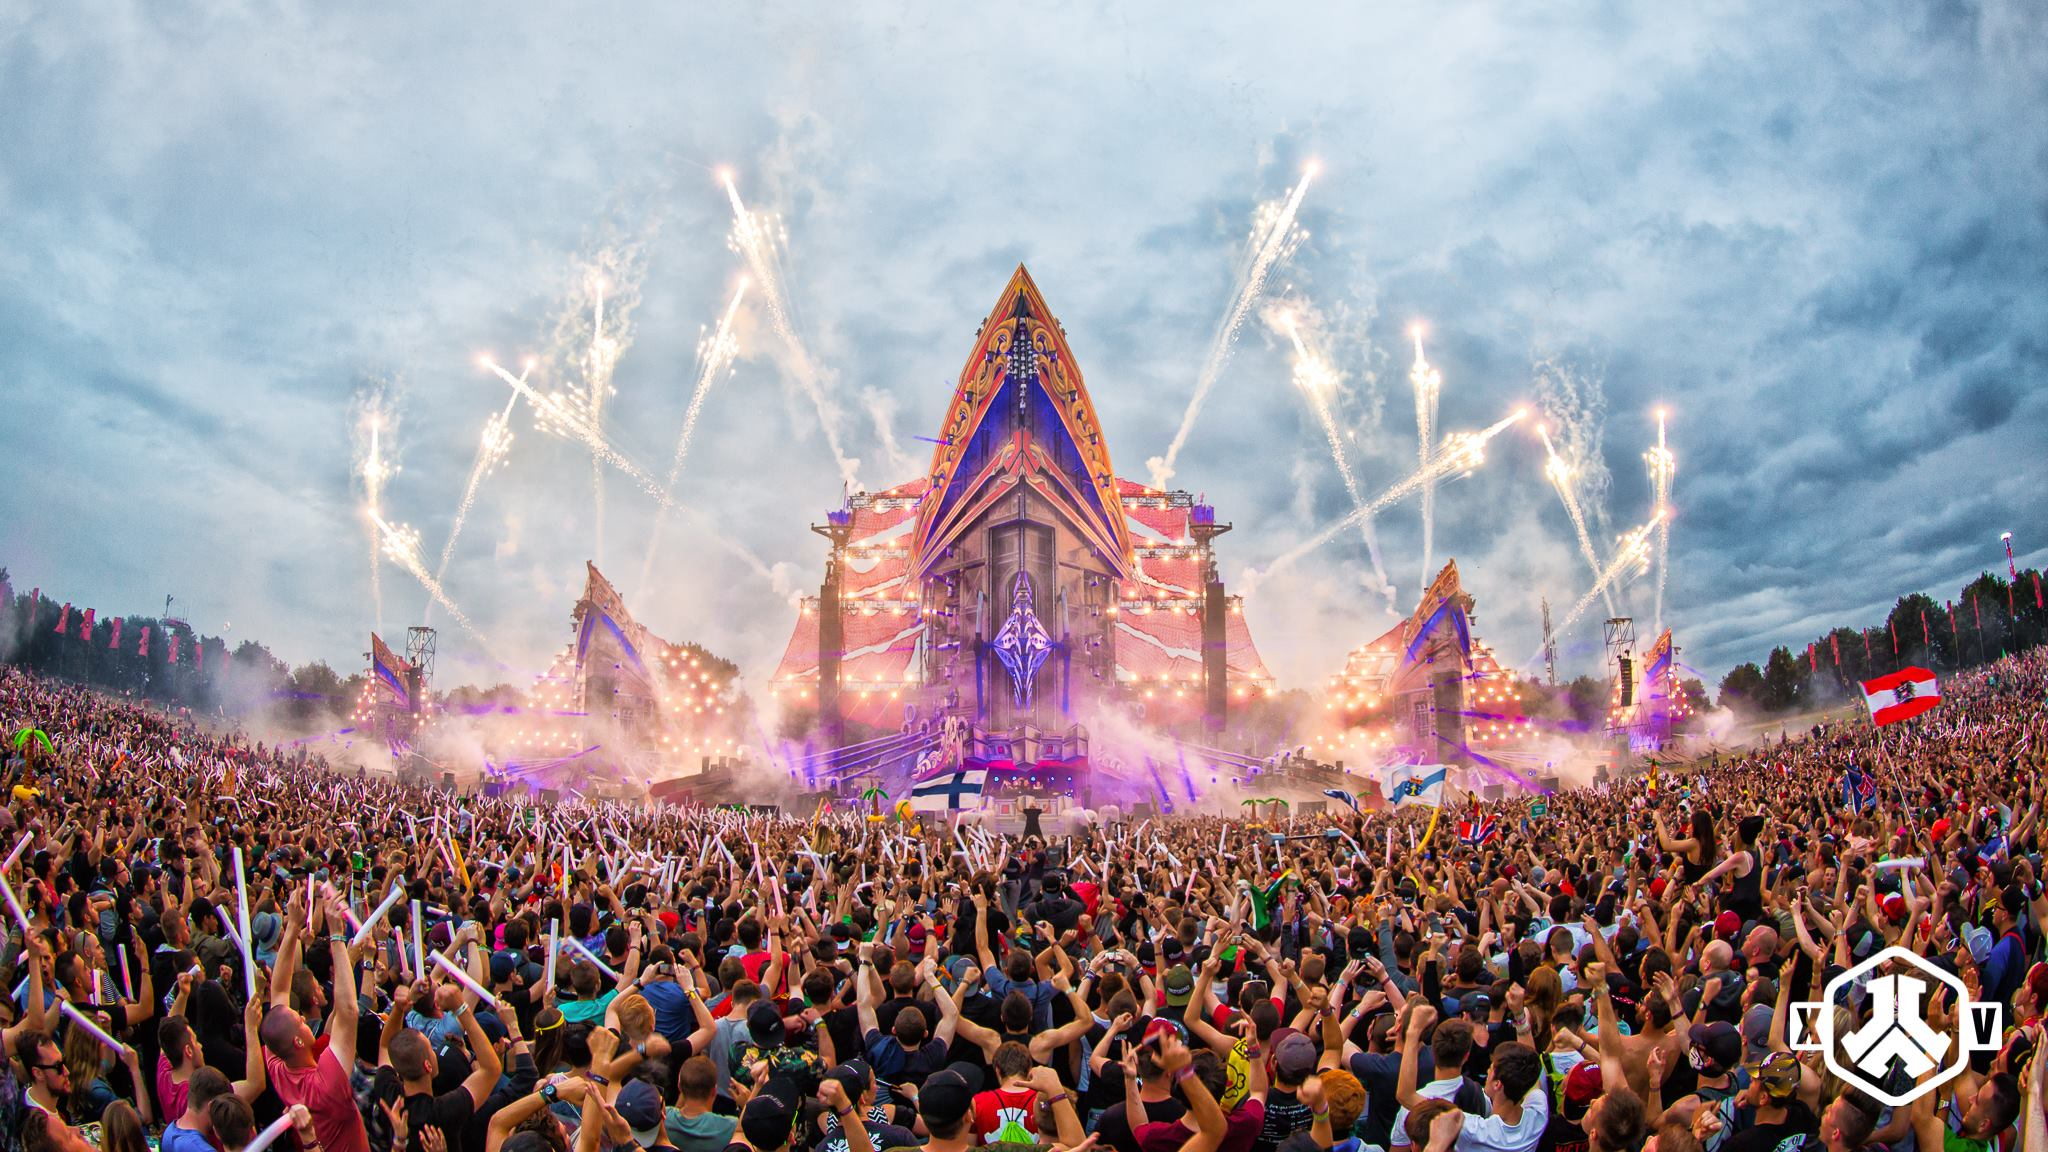 Defqon 1 Zelt : These are the defqon livesets hard news